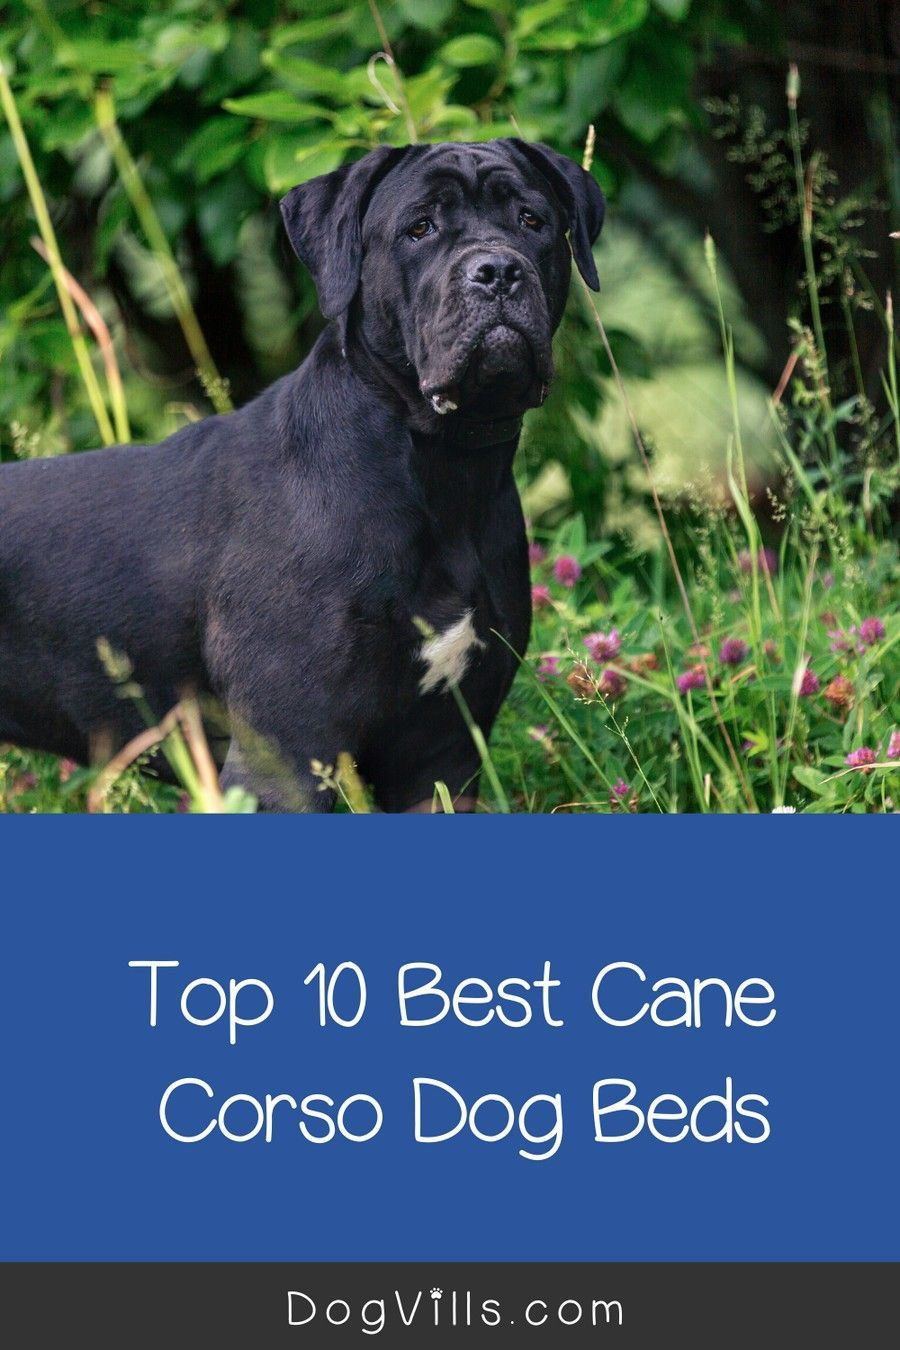 Top 10 Best Dog Beds for a Cane Corso Cool dog beds